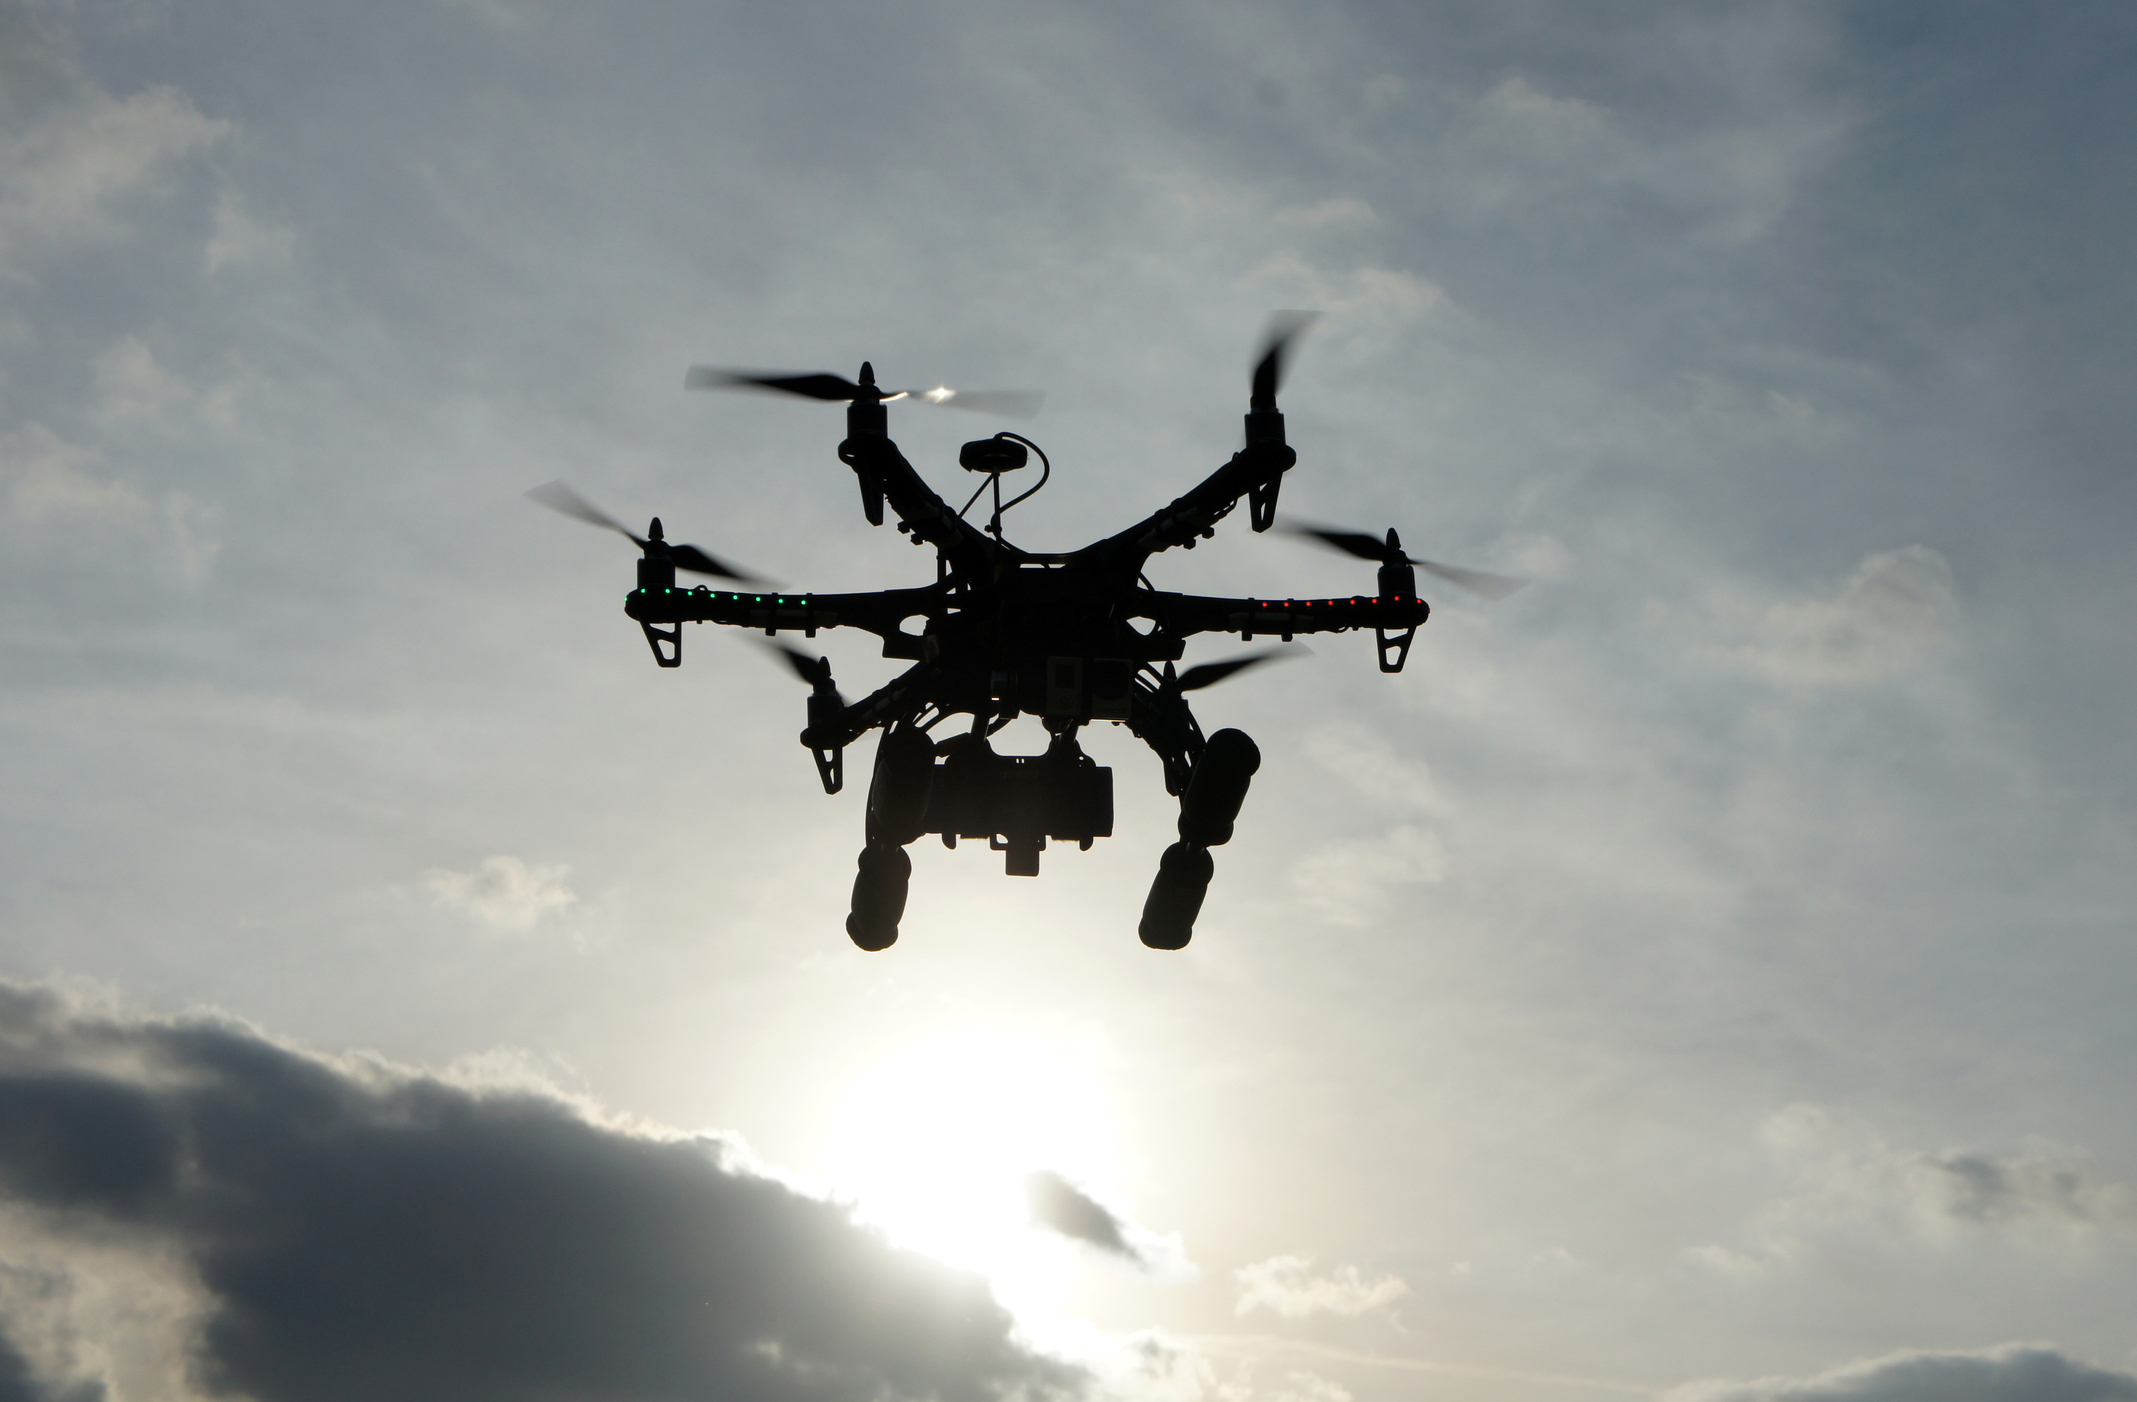 Drone stock image. (Getty Images)